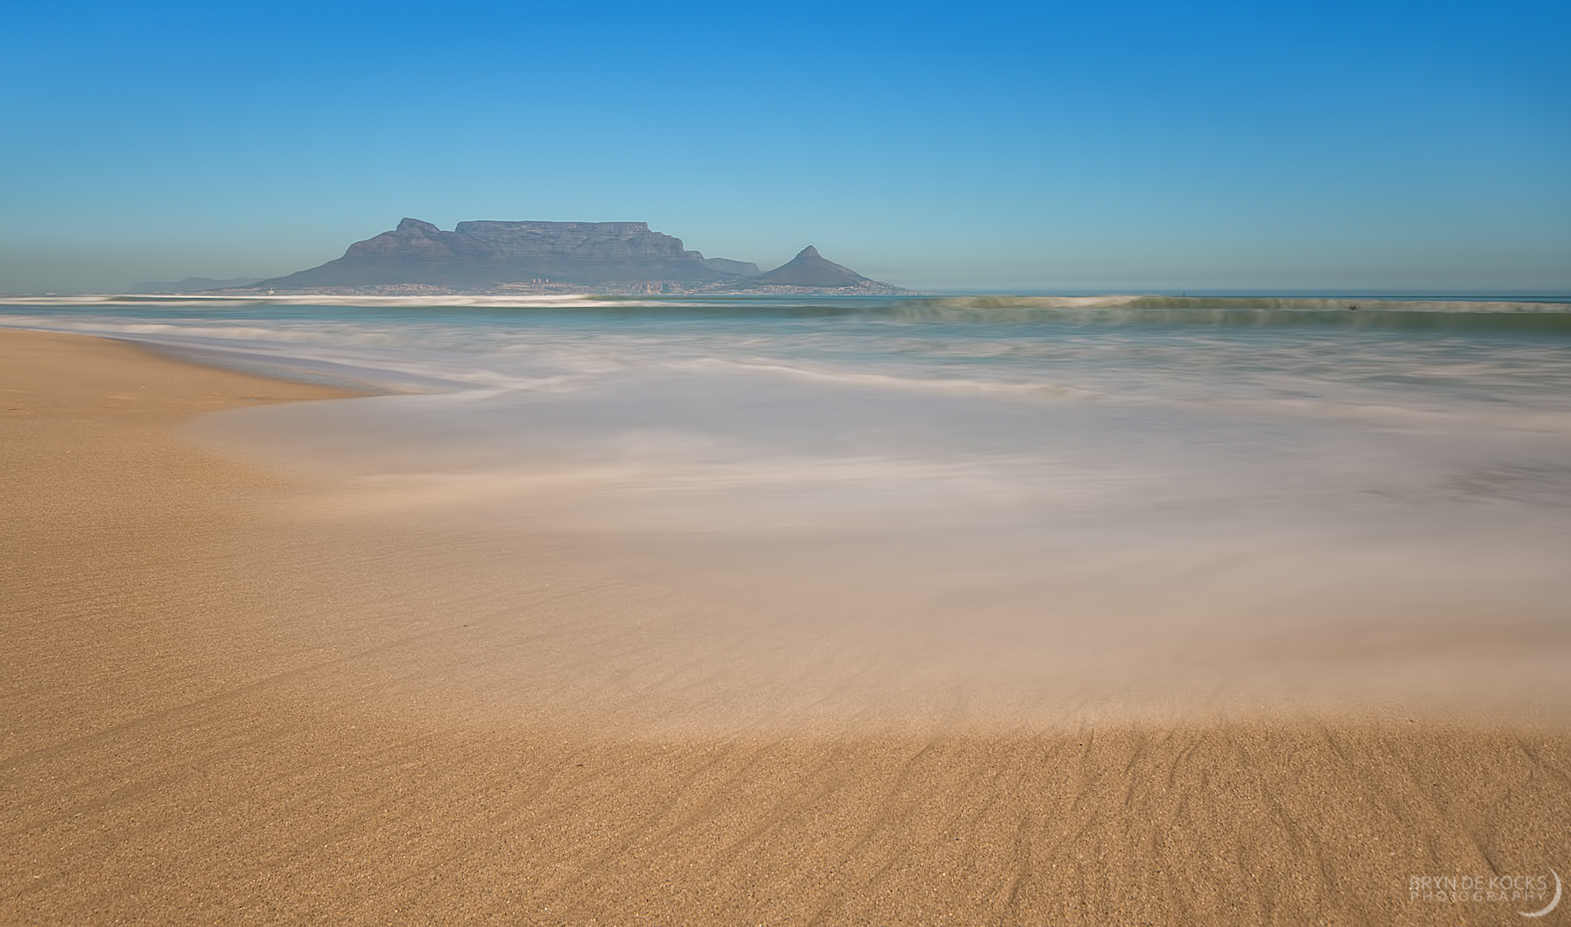 Table Mountain as seen from Blouberg